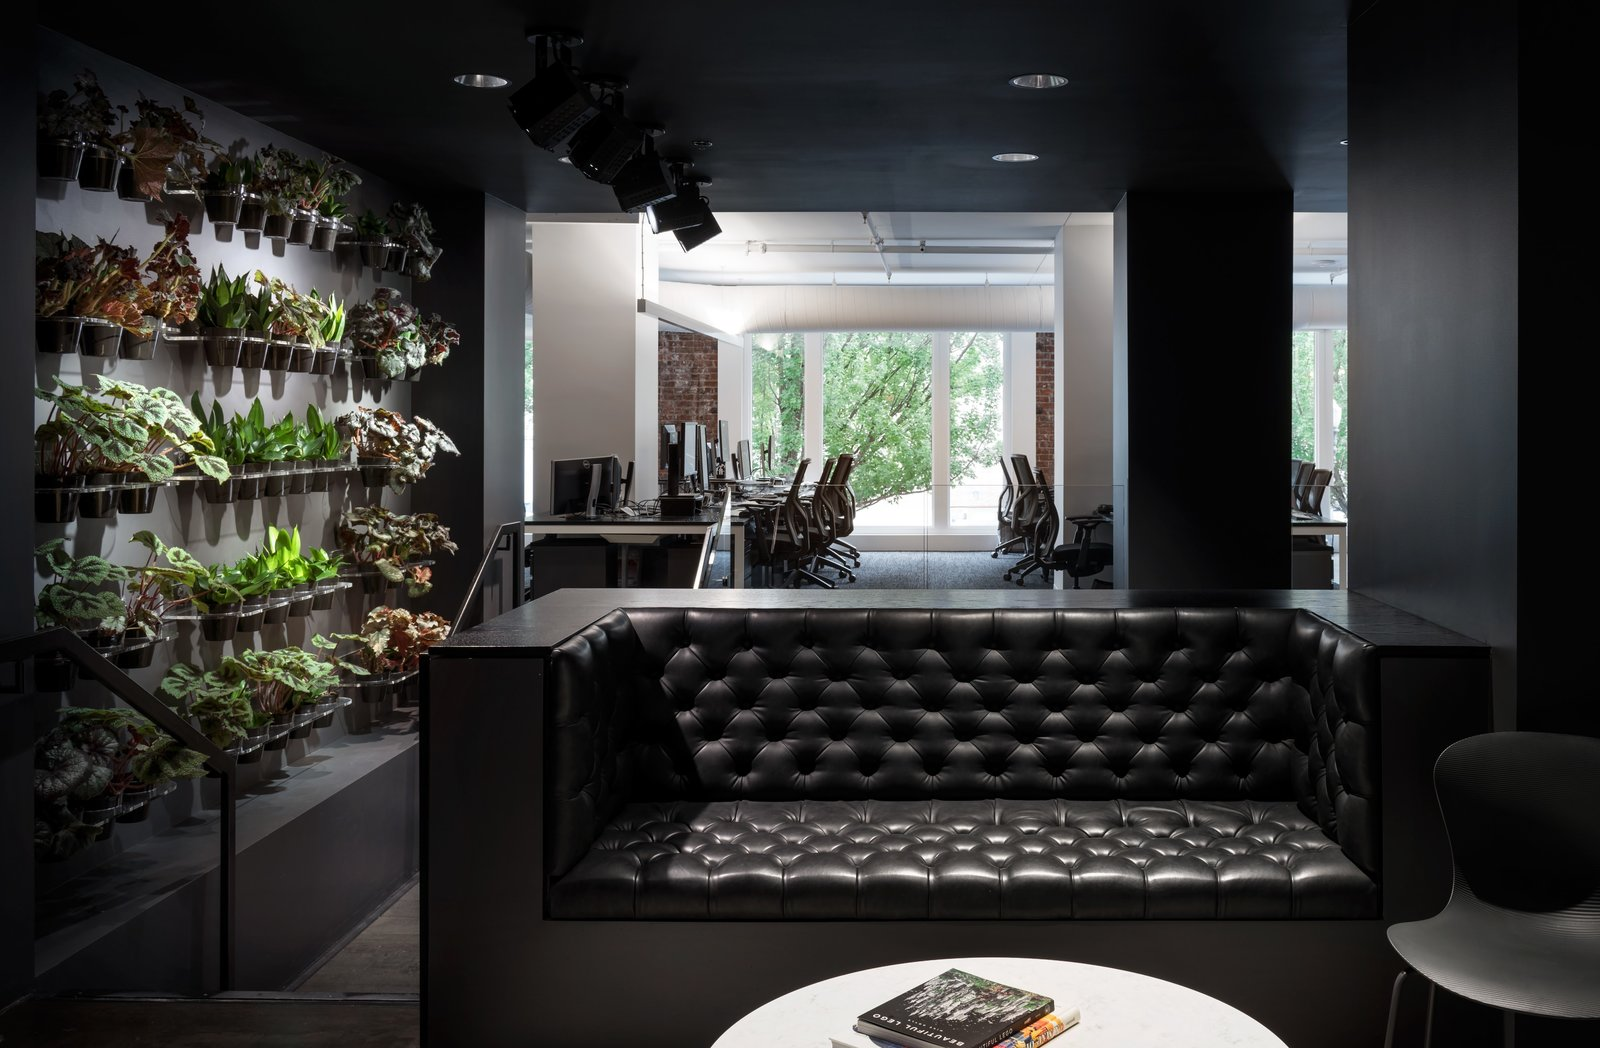 This dark lounge space with dramatic lighting is juxtaposed with a wall of carefully tended plants—hinting at the greenery that Portlanders are surrounded by year round.